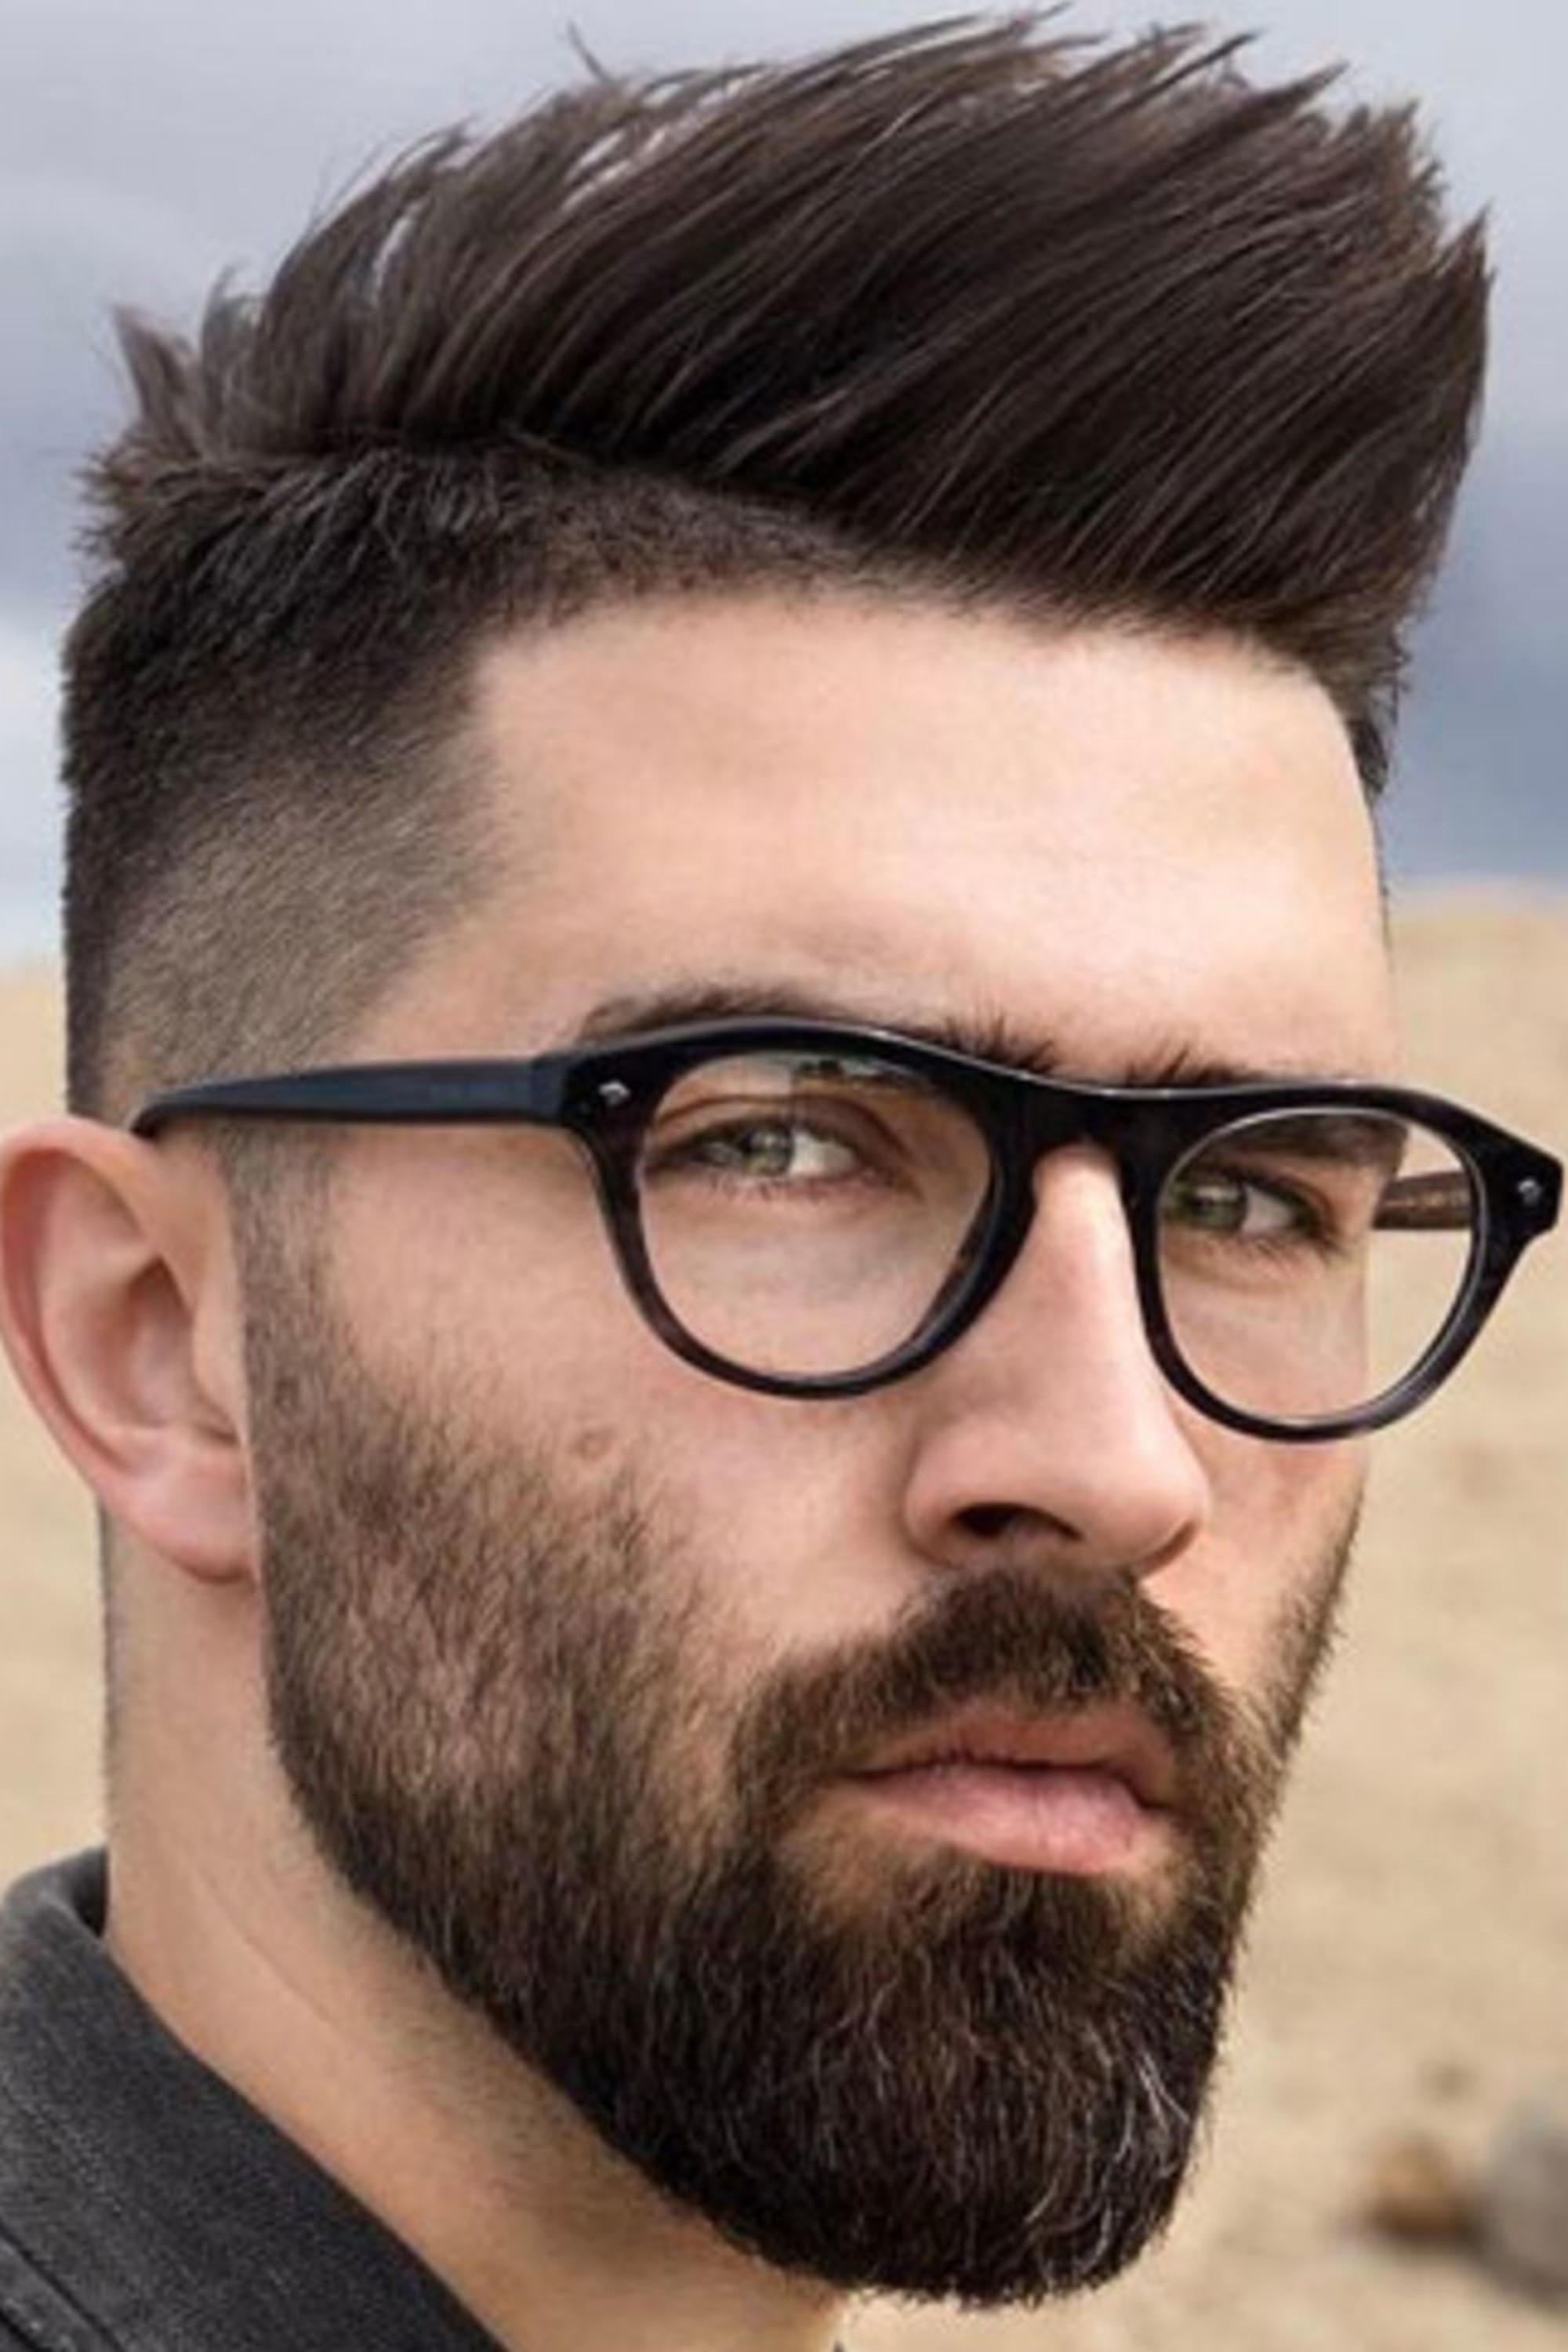 A short and tapered beard for stylish men.